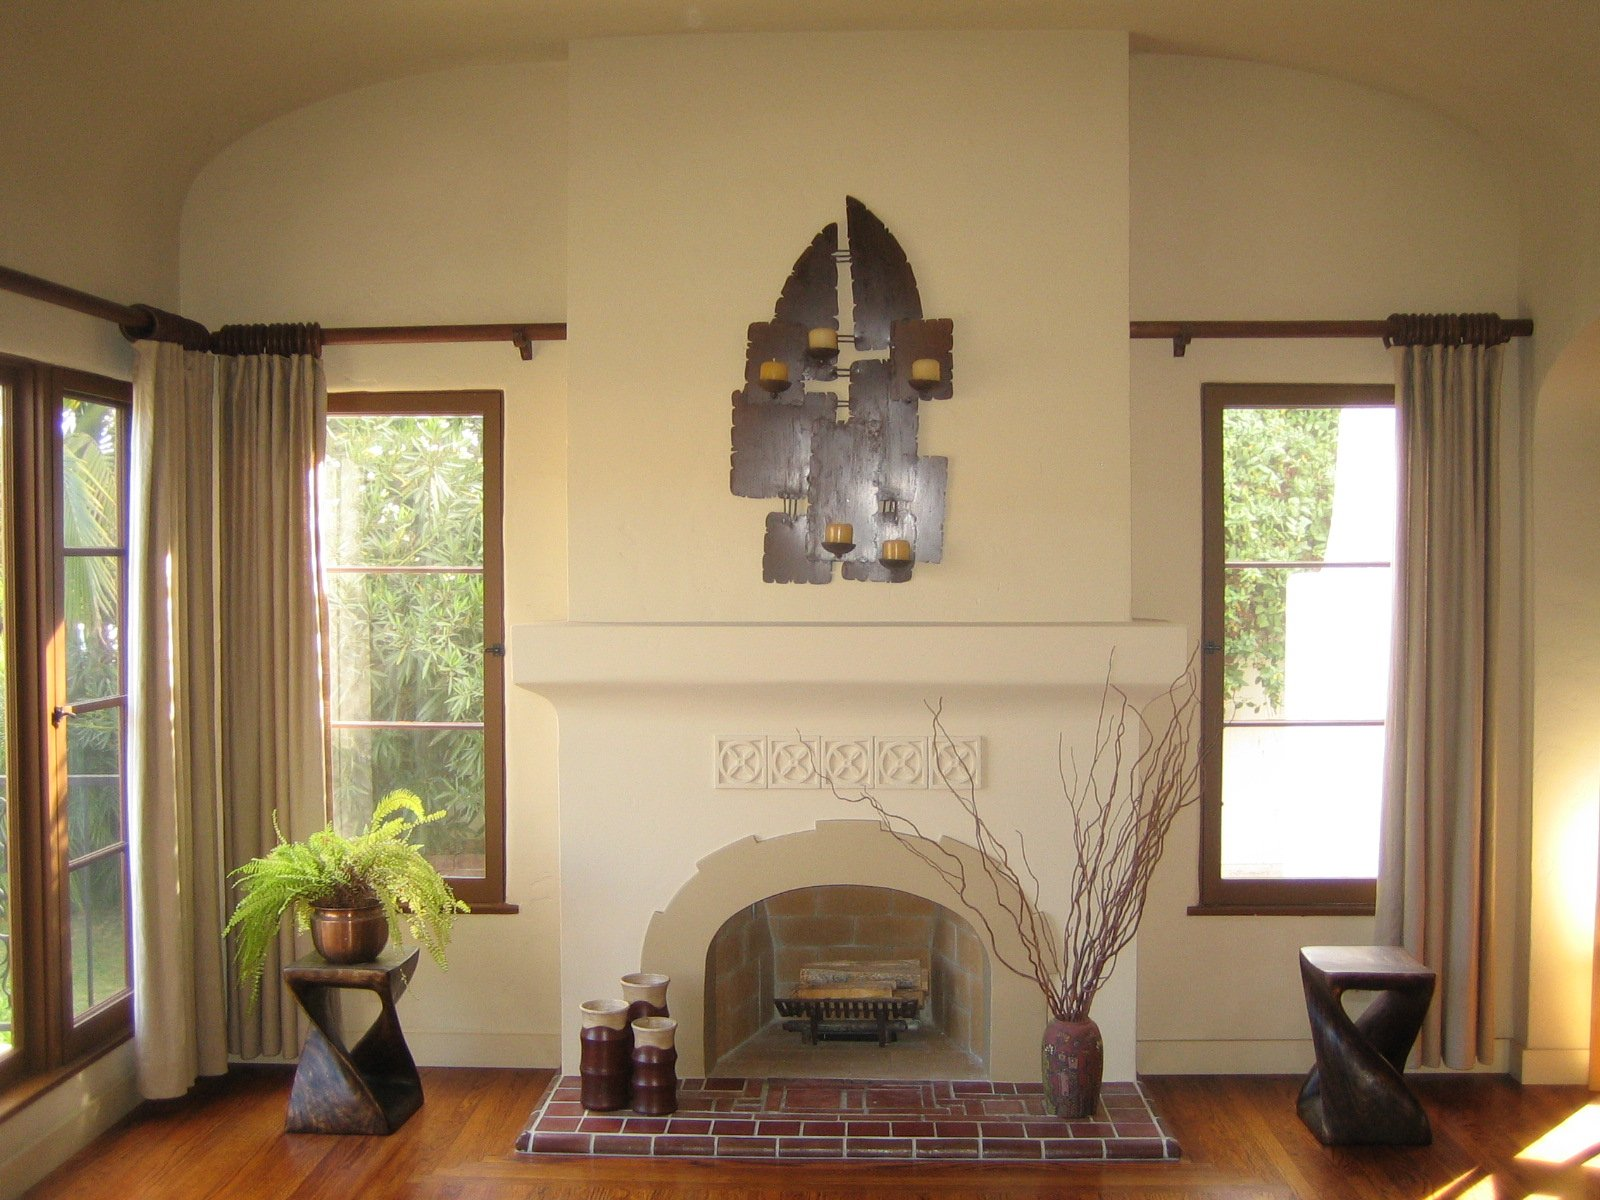 Image Result For Spanish Style Large White Stucco Fireplace Mi Casita On Pinterest | Stucco Fireplace, Mexican Folk